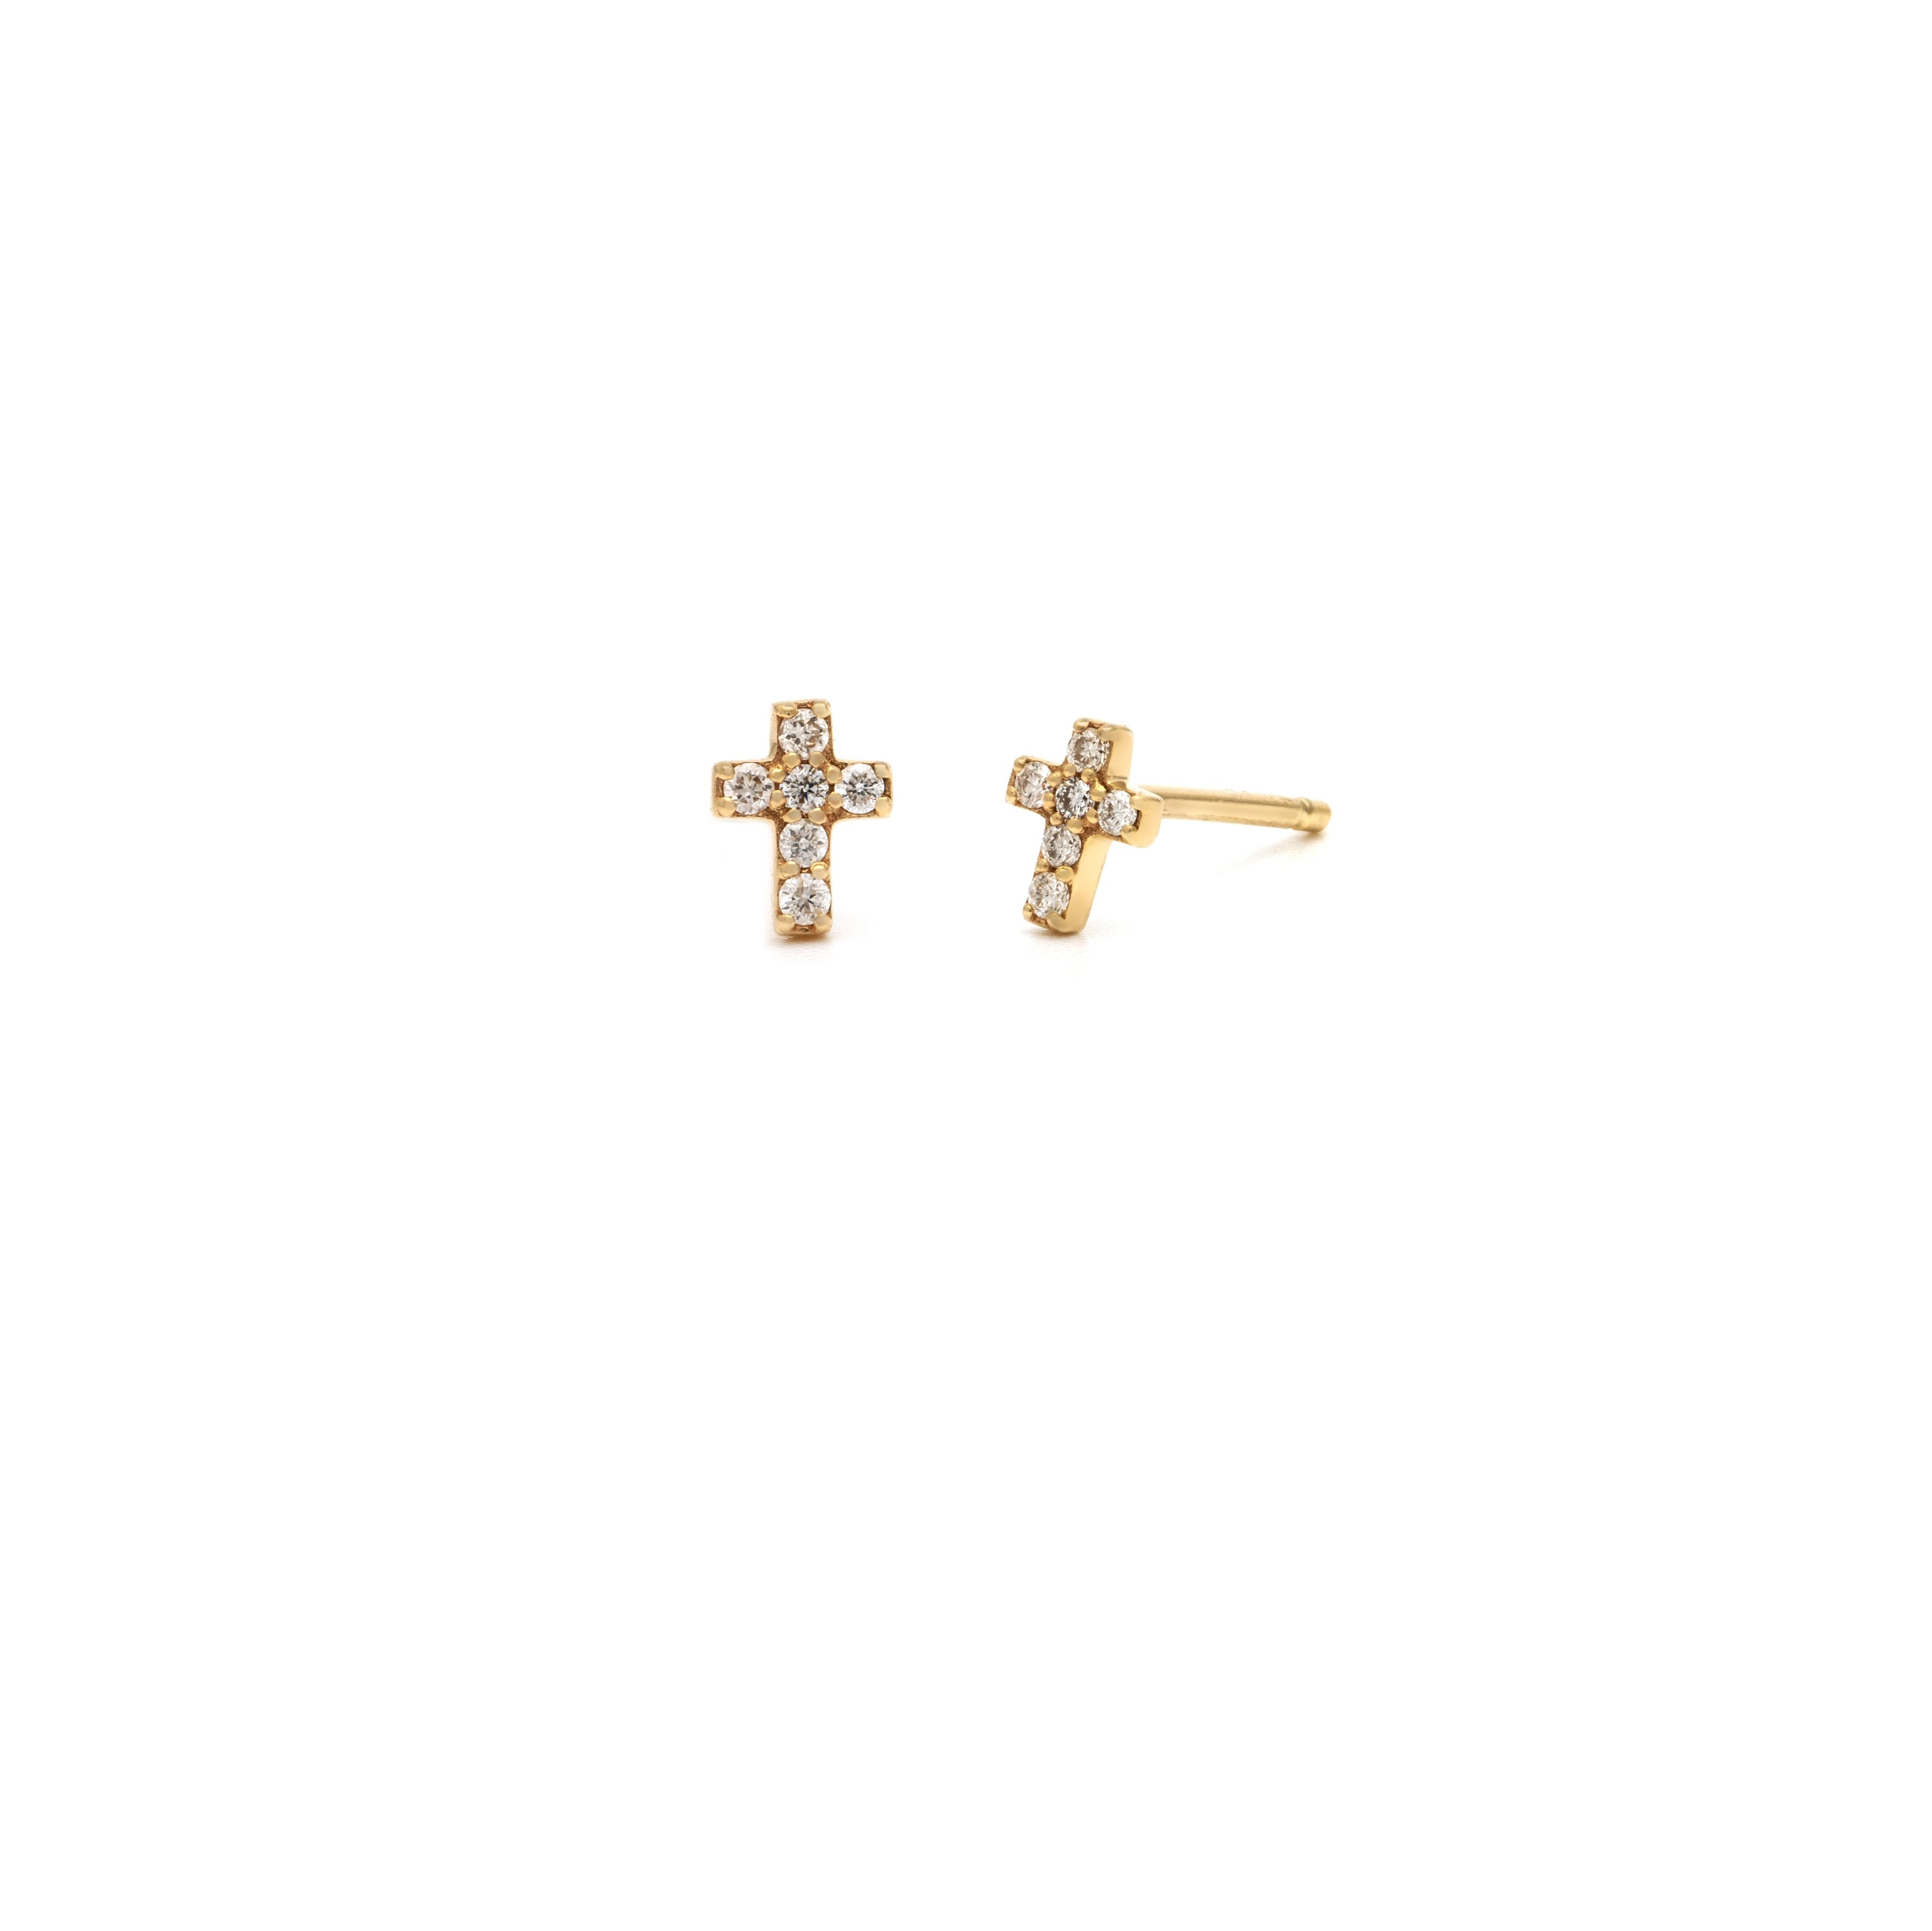 Pave Cross Stud - 14k Solid Gold